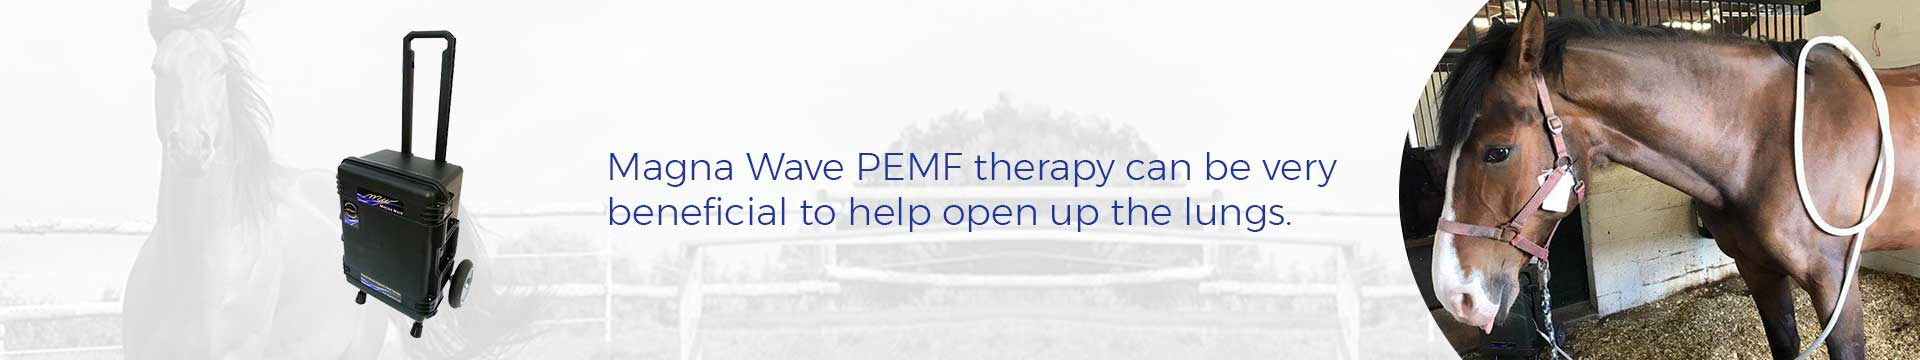 Magna Wave PEMF therapy can be very beneficial to help open up the lungs.